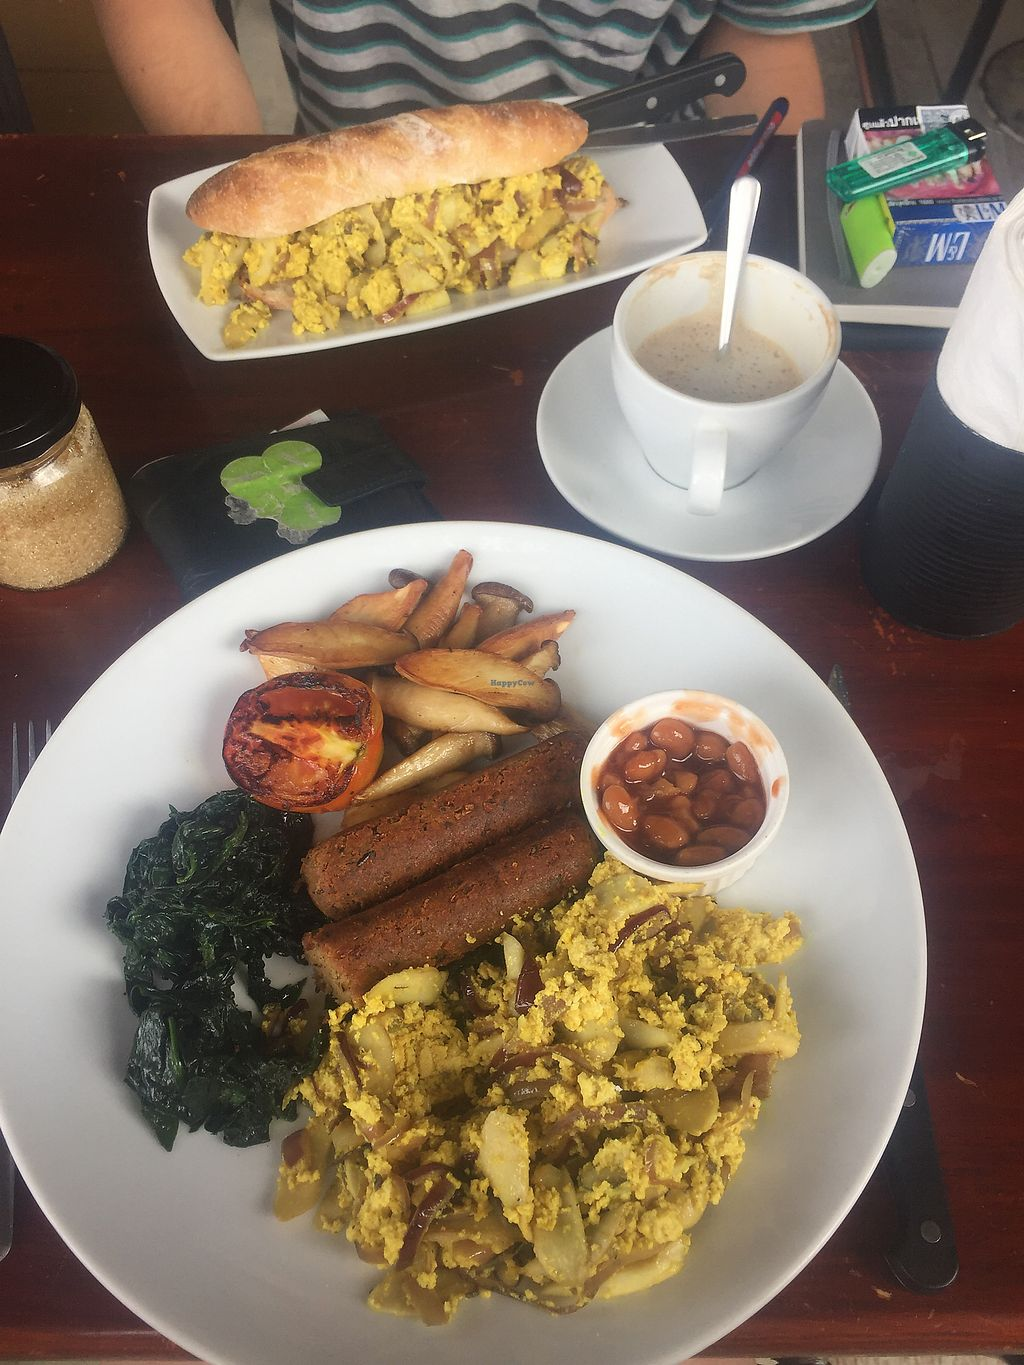 """Photo of Cafe Culture  by <a href=""""/members/profile/FionaPaine"""">FionaPaine</a> <br/>Veggie breakfast (no toast, extra sausage only about 25 baht) and tofu scramble sandwich  <br/> March 2, 2018  - <a href='/contact/abuse/image/81149/365668'>Report</a>"""